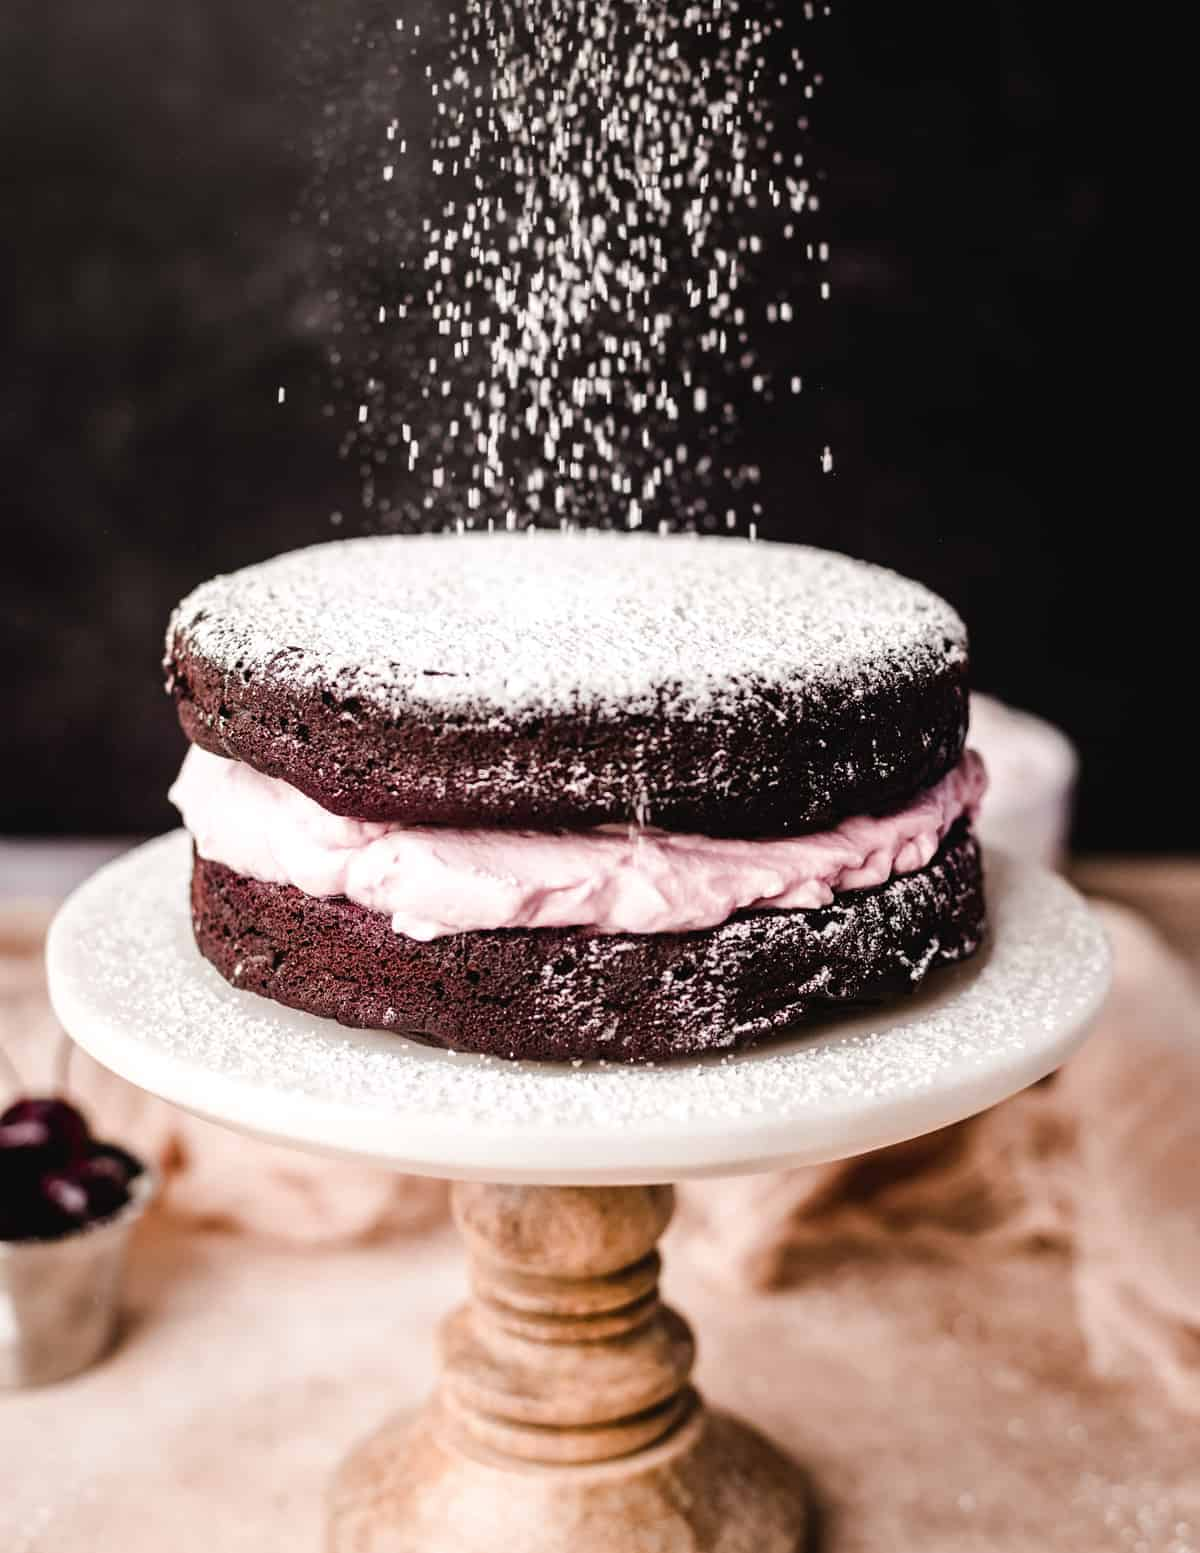 Powdered sugar is the perfect topping for this dark chocolate torte with bourbon cherry whipped cream.